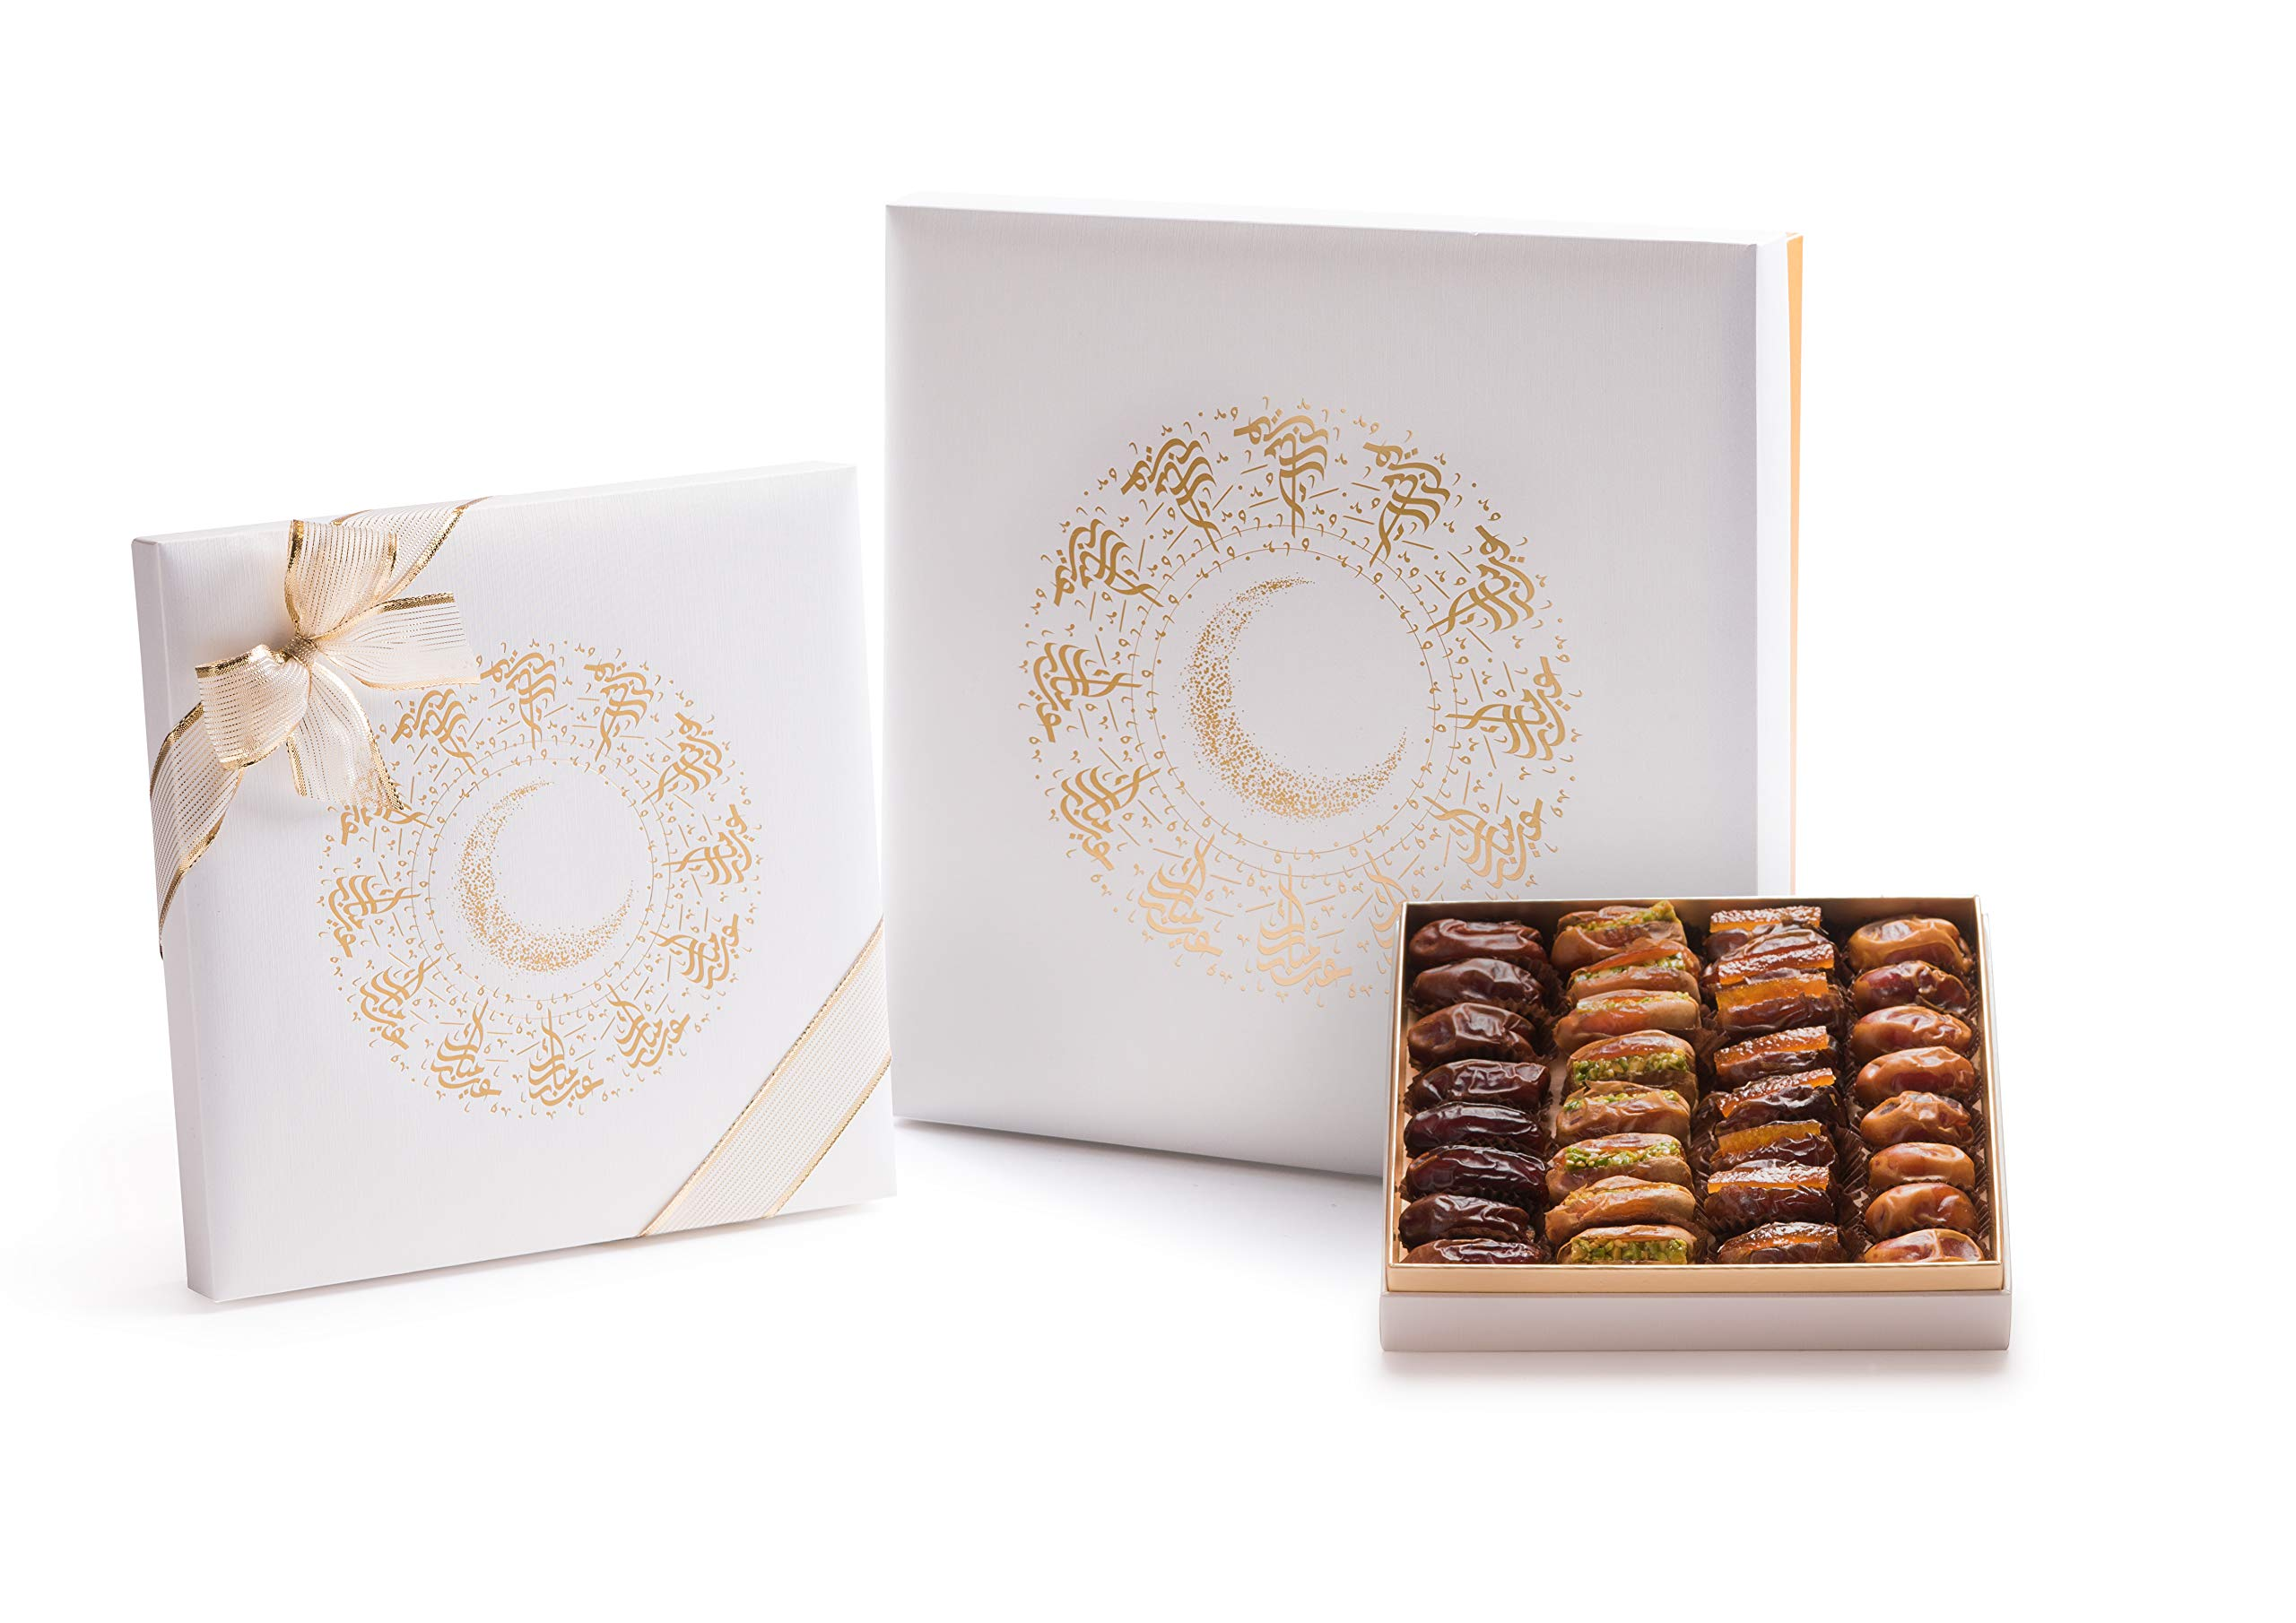 Eid Mubarak Radiant White and Gold Gift Box with Gourmet Filled Dates (38 Pieces)